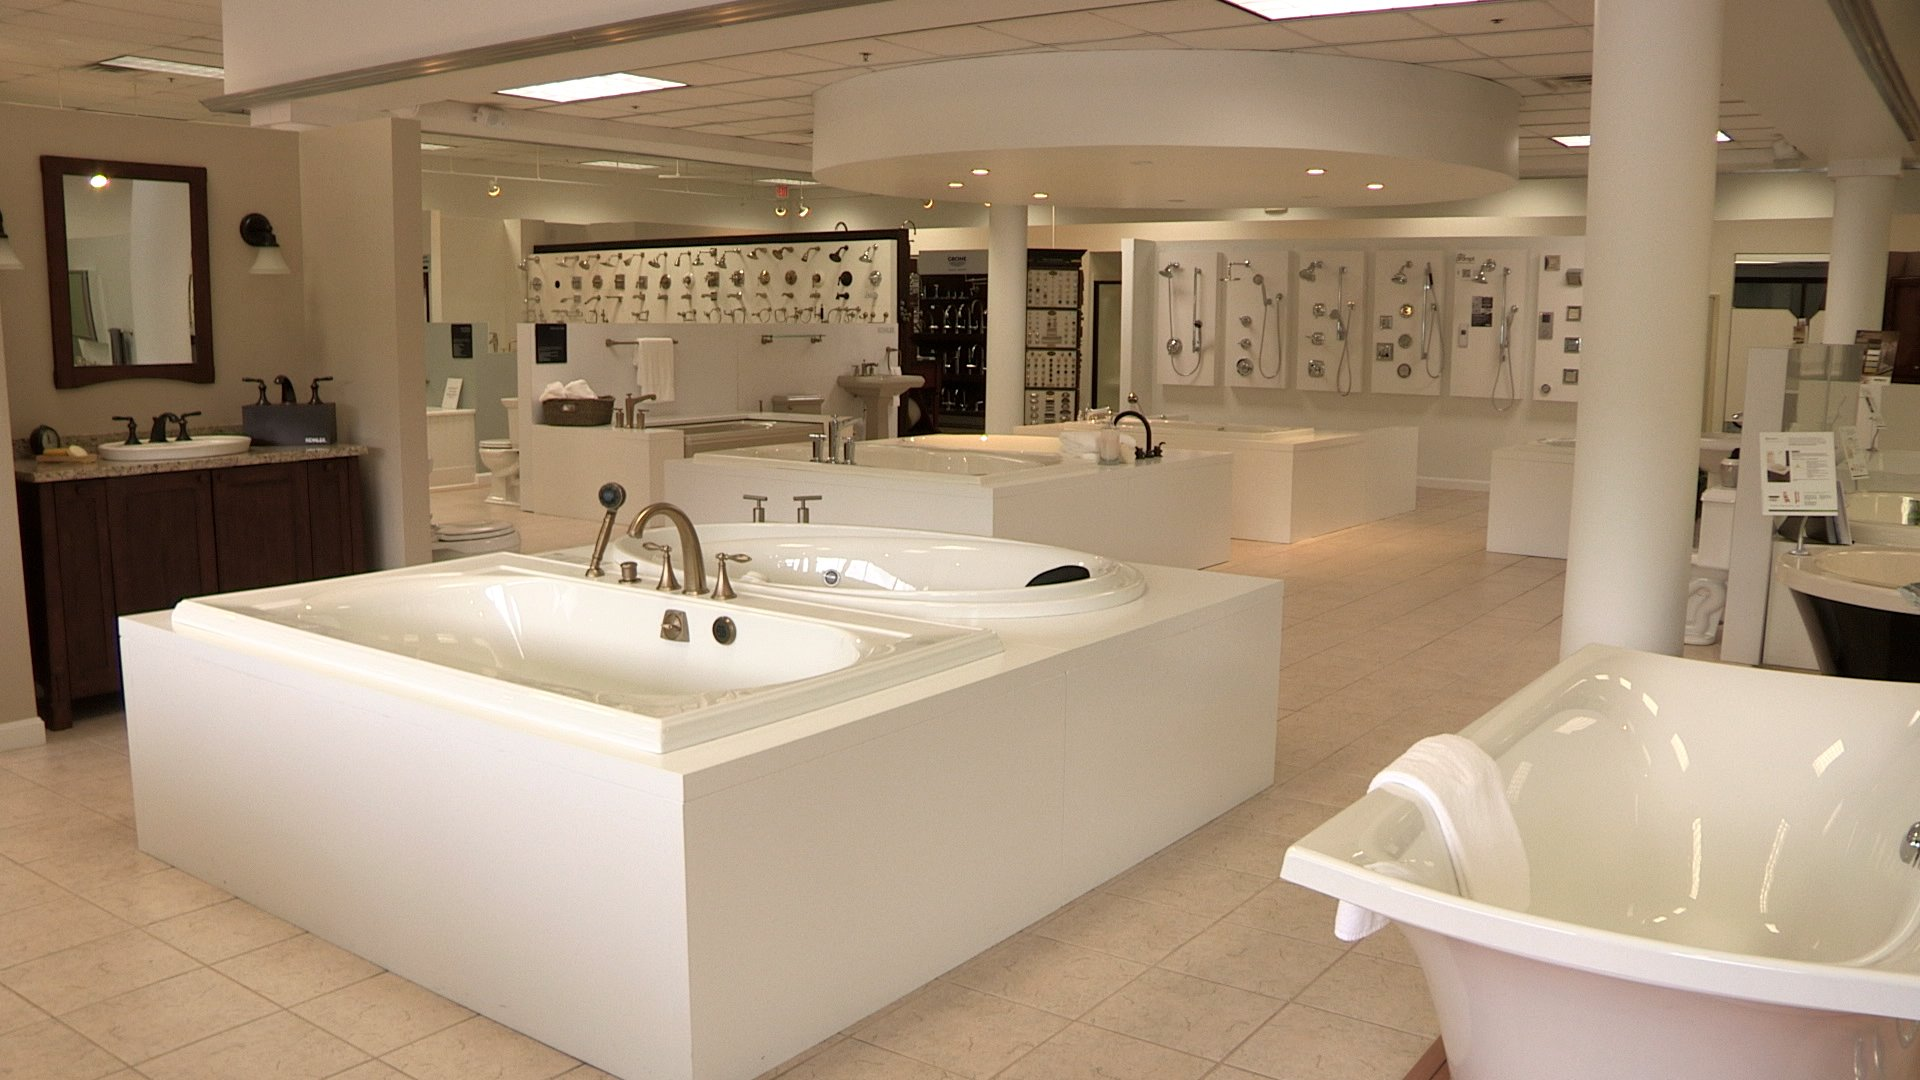 High Quality Products From Kohler Elkay Grohe Rohl Symmons The Ultimate Bath Showroom Ct Ma Me Nh Ny Ri Vt